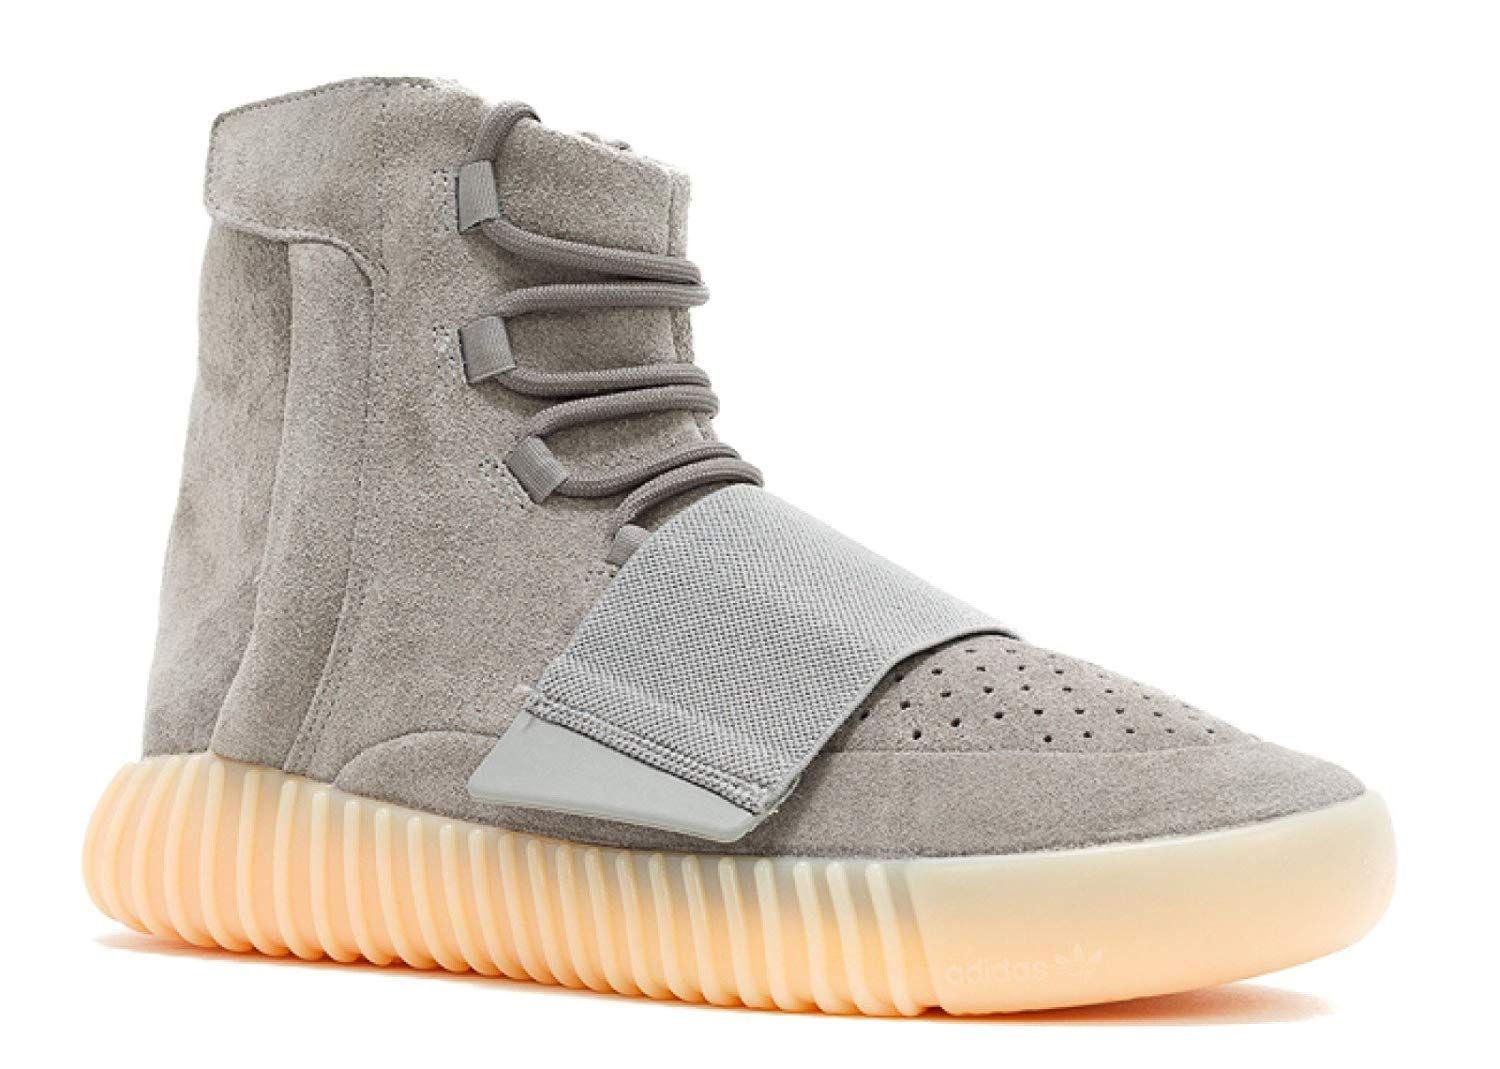 f2b0c4c63d8a6 Yeezy Boost 750 Grey with Gum sole